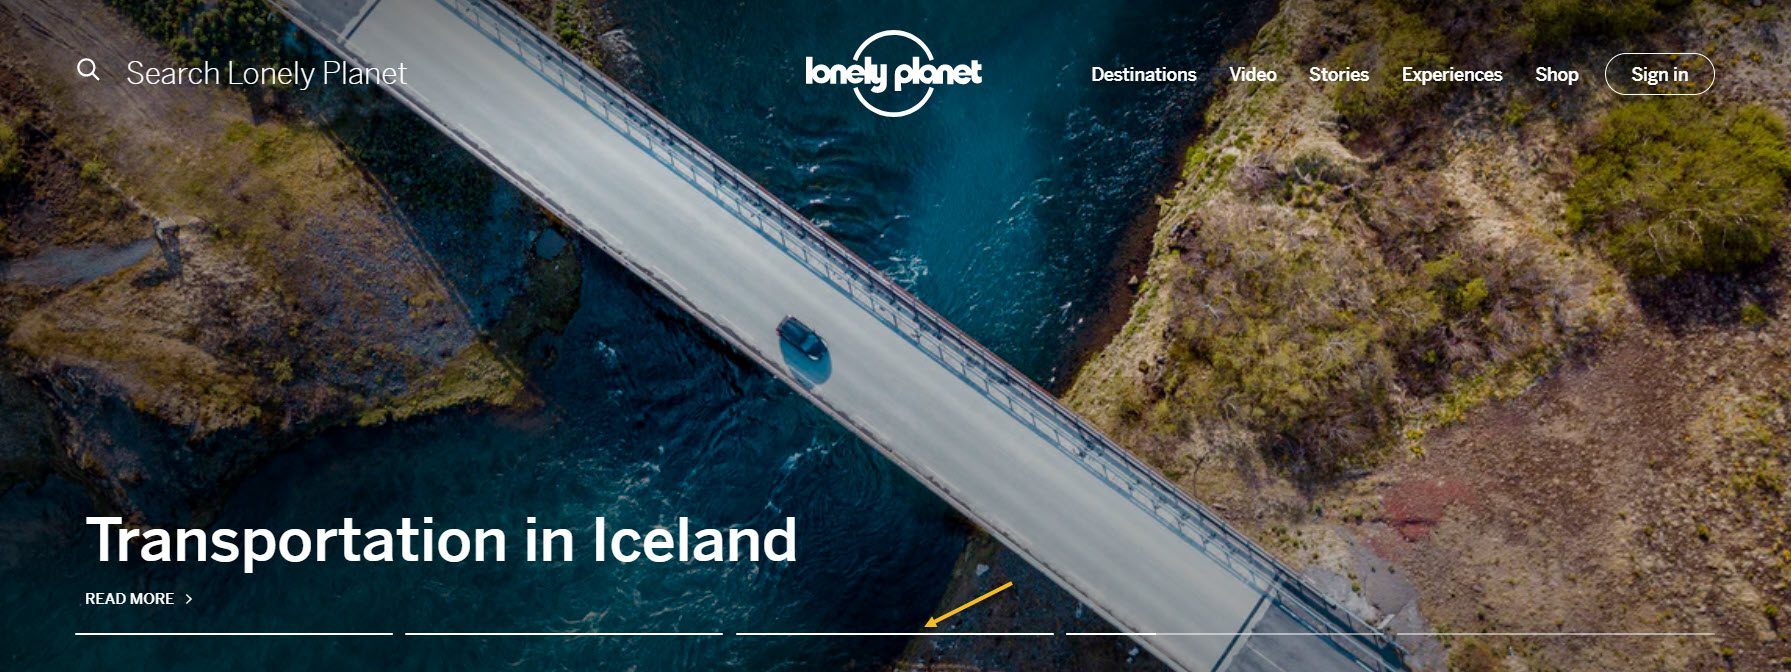 Lonely Planet slider example